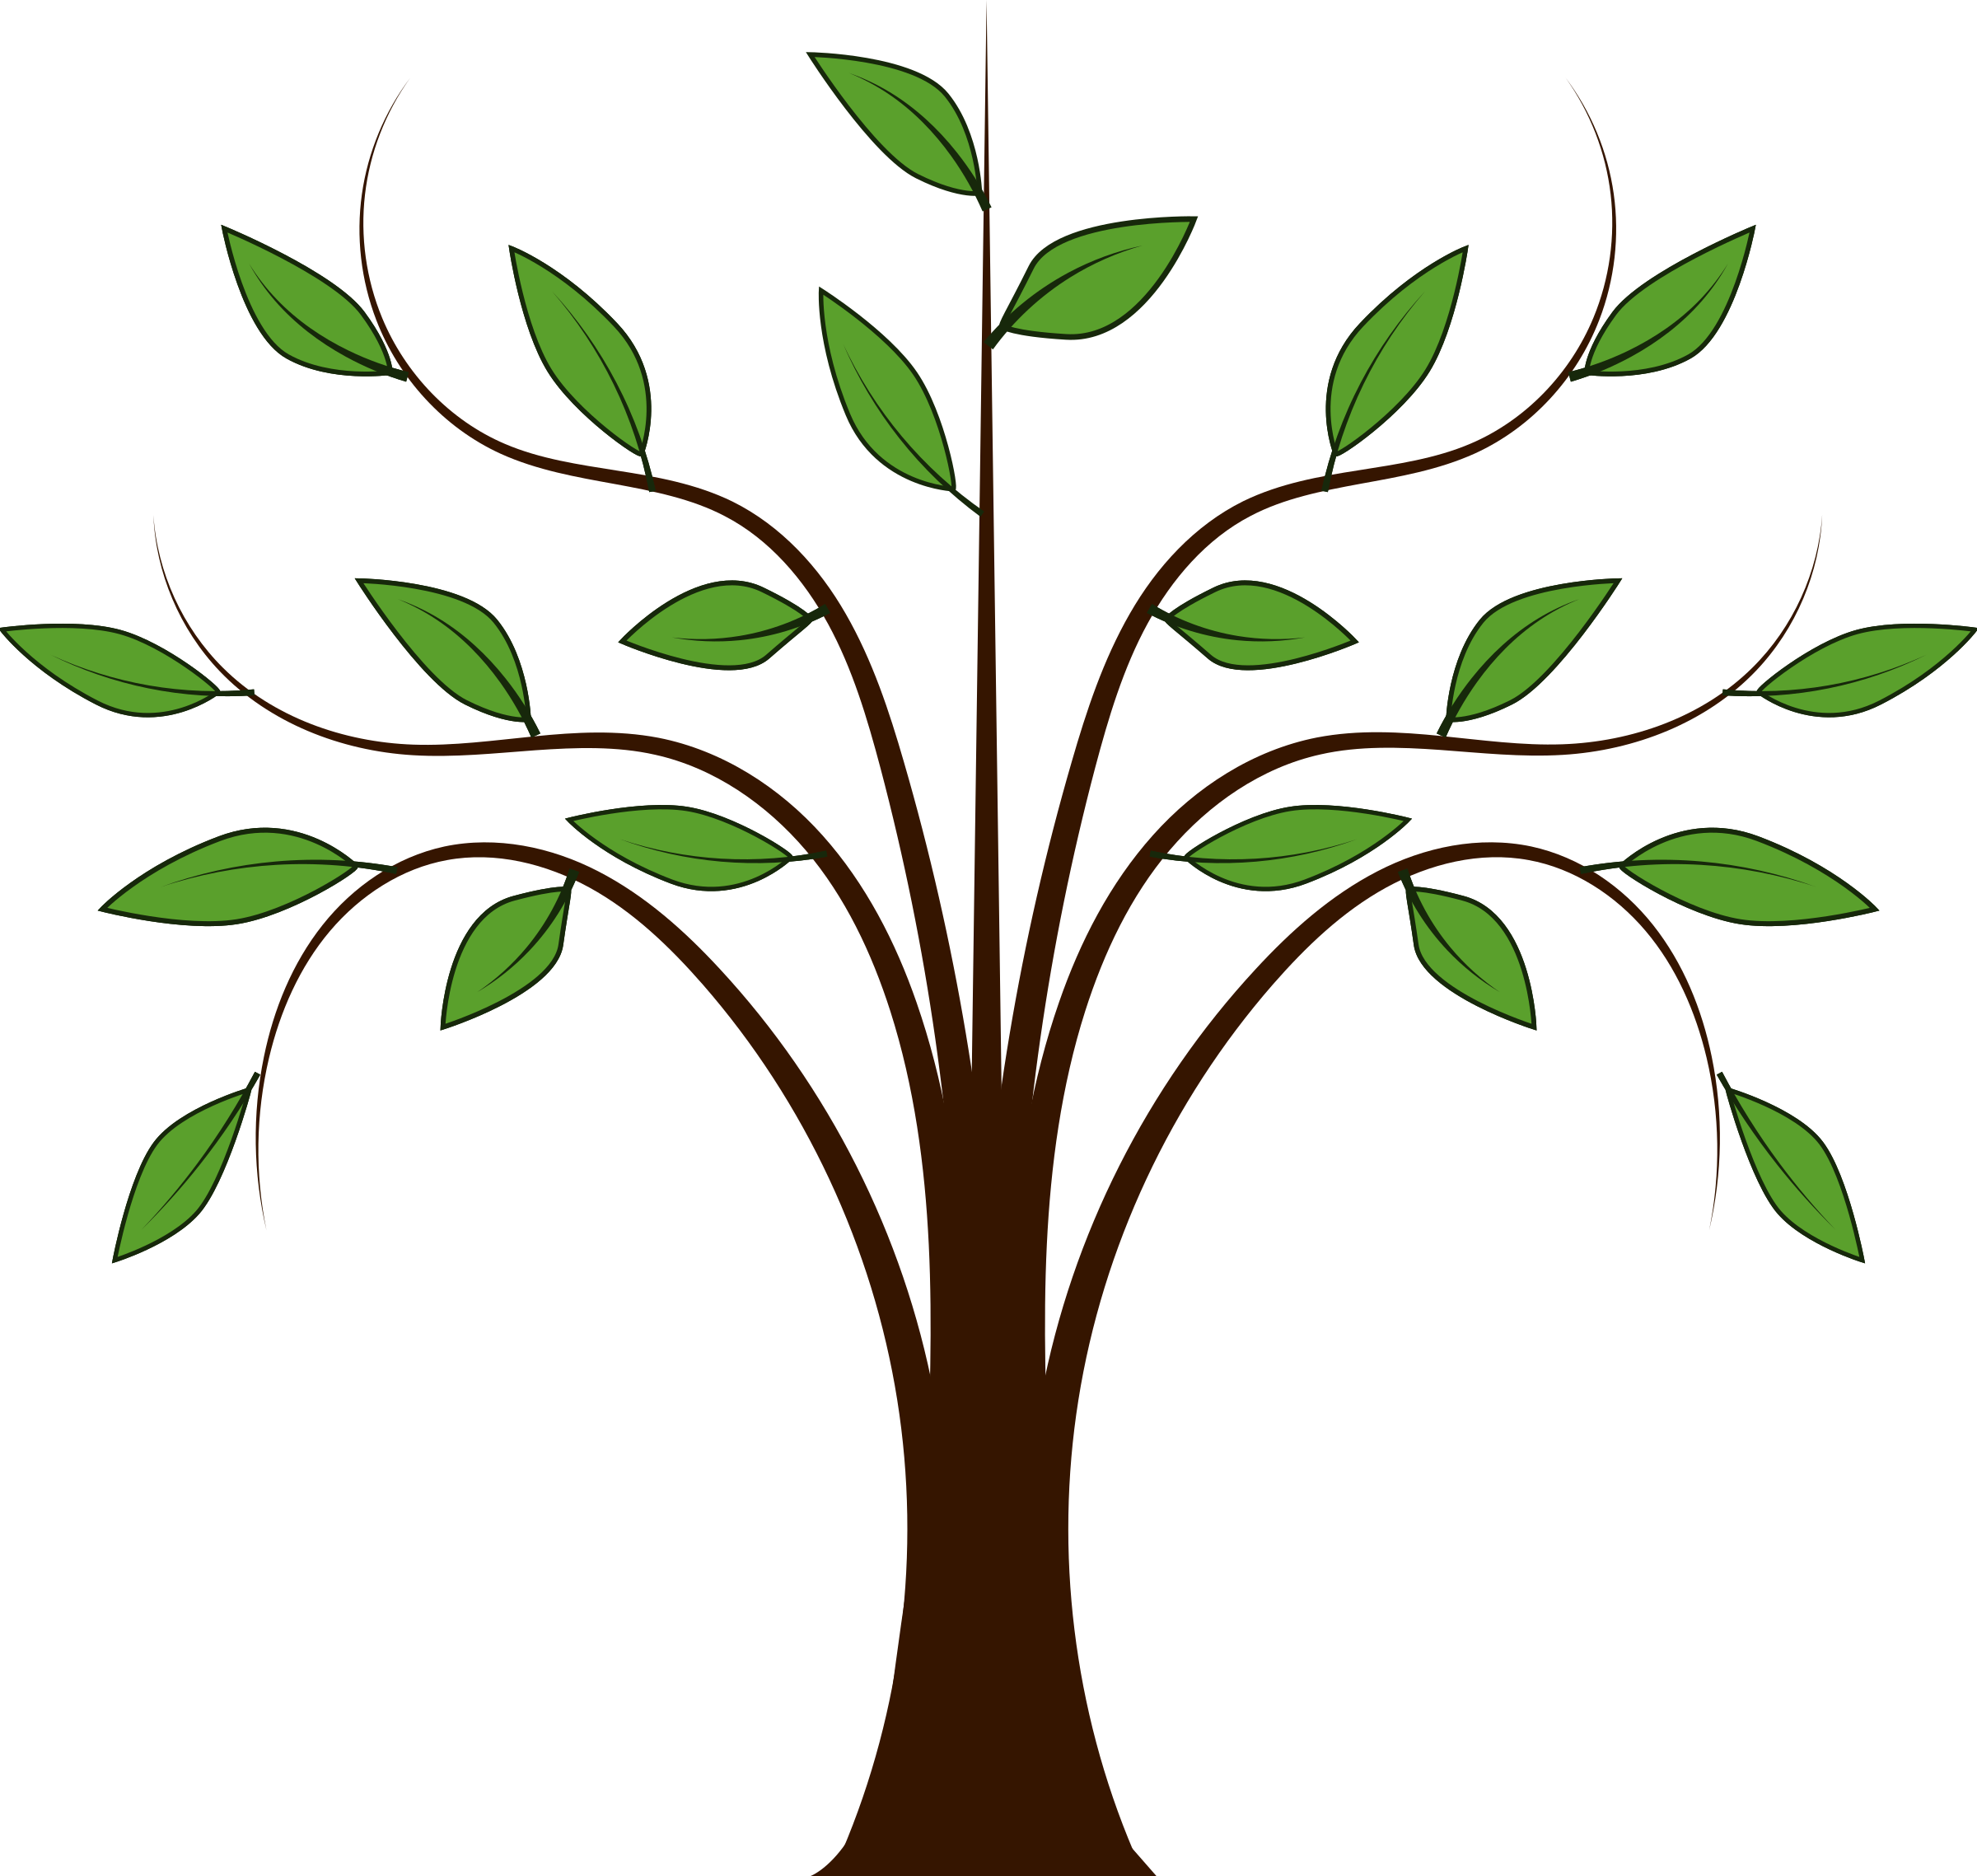 Vines clipart family tree. Whispy big image png